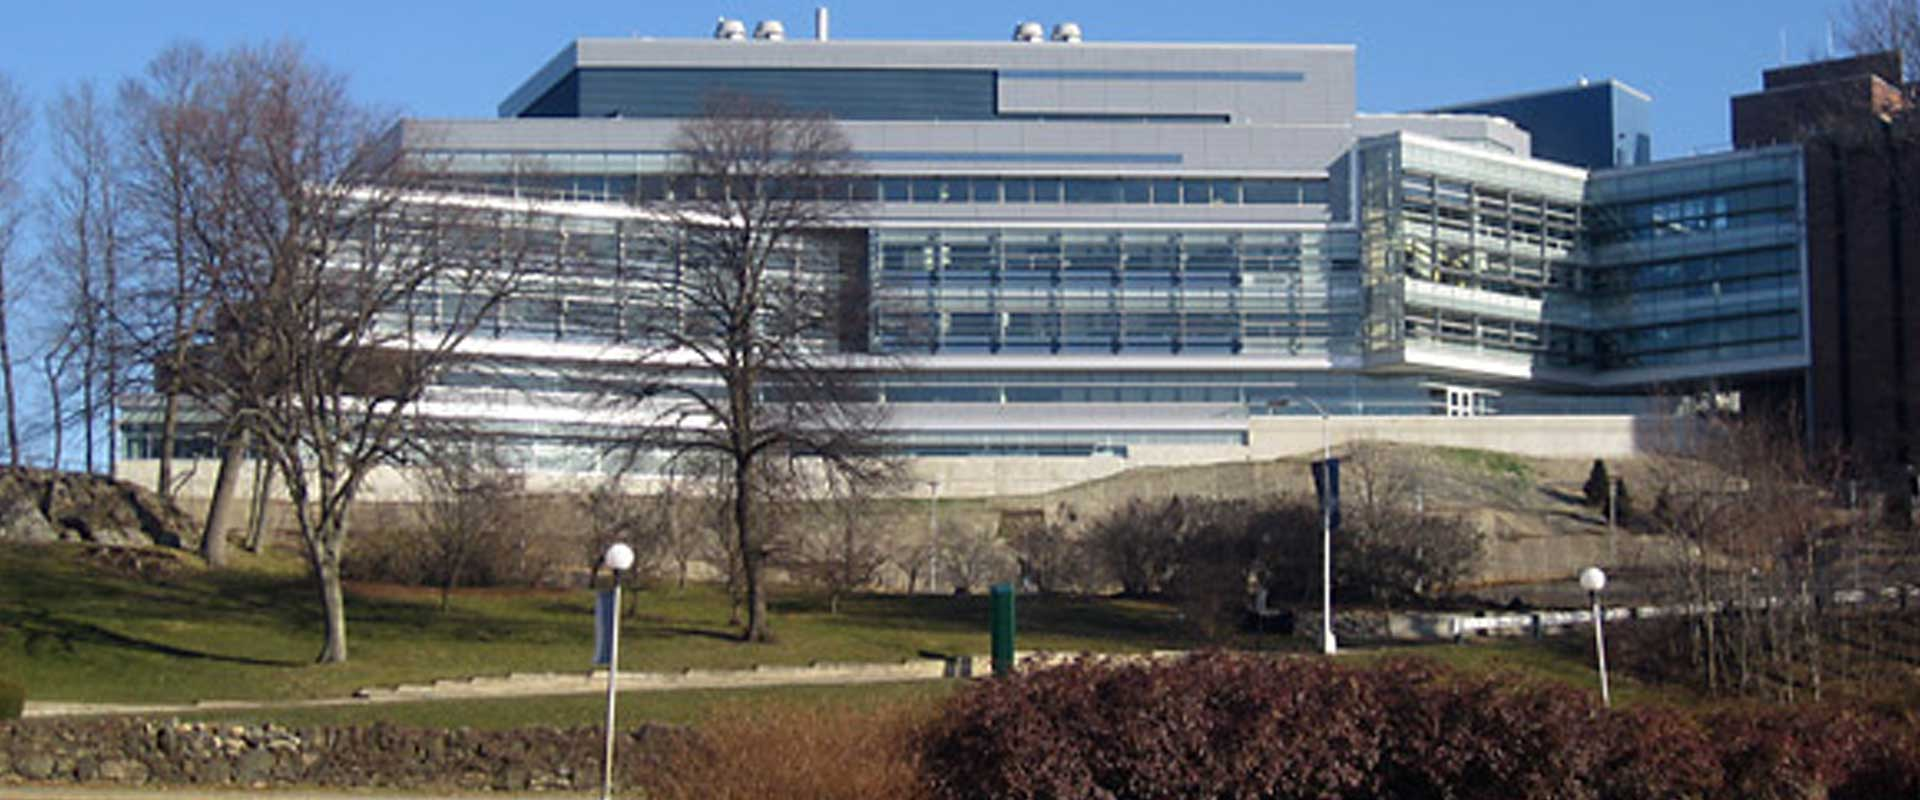 Brandeis University Carl J. Shapiro Science Center